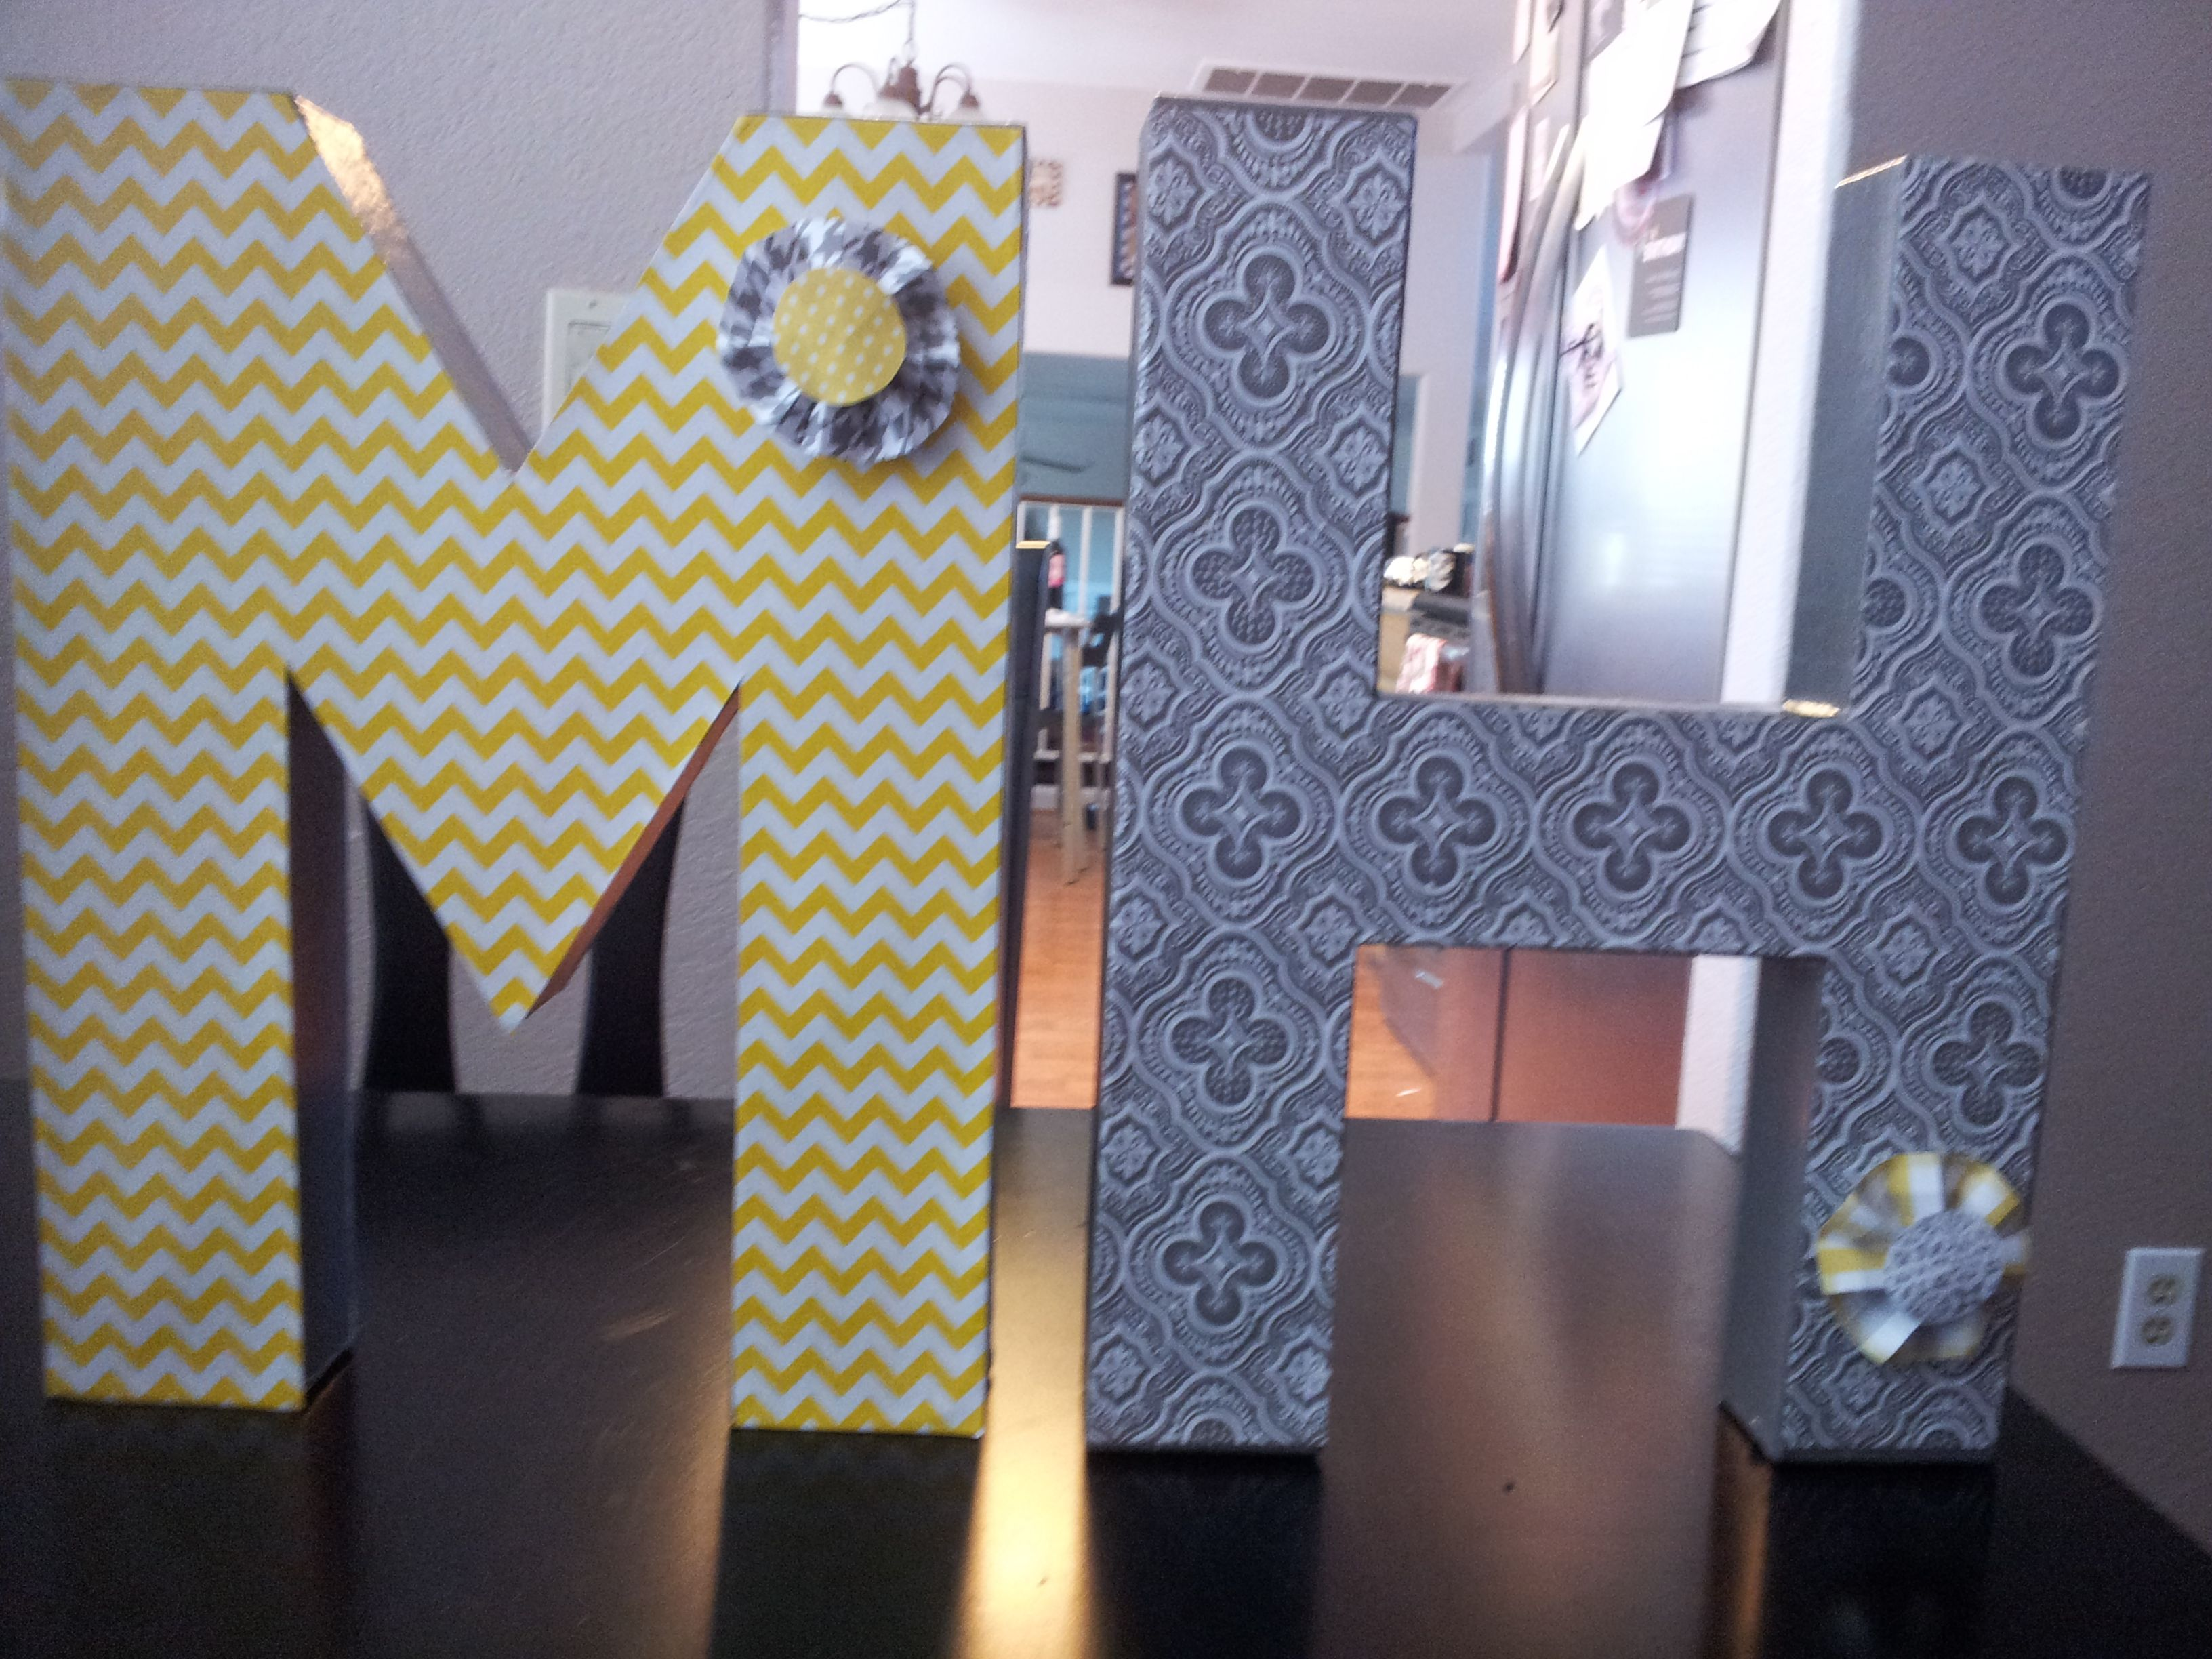 Wedding decorations Bought paper mache letters at Michaels mod